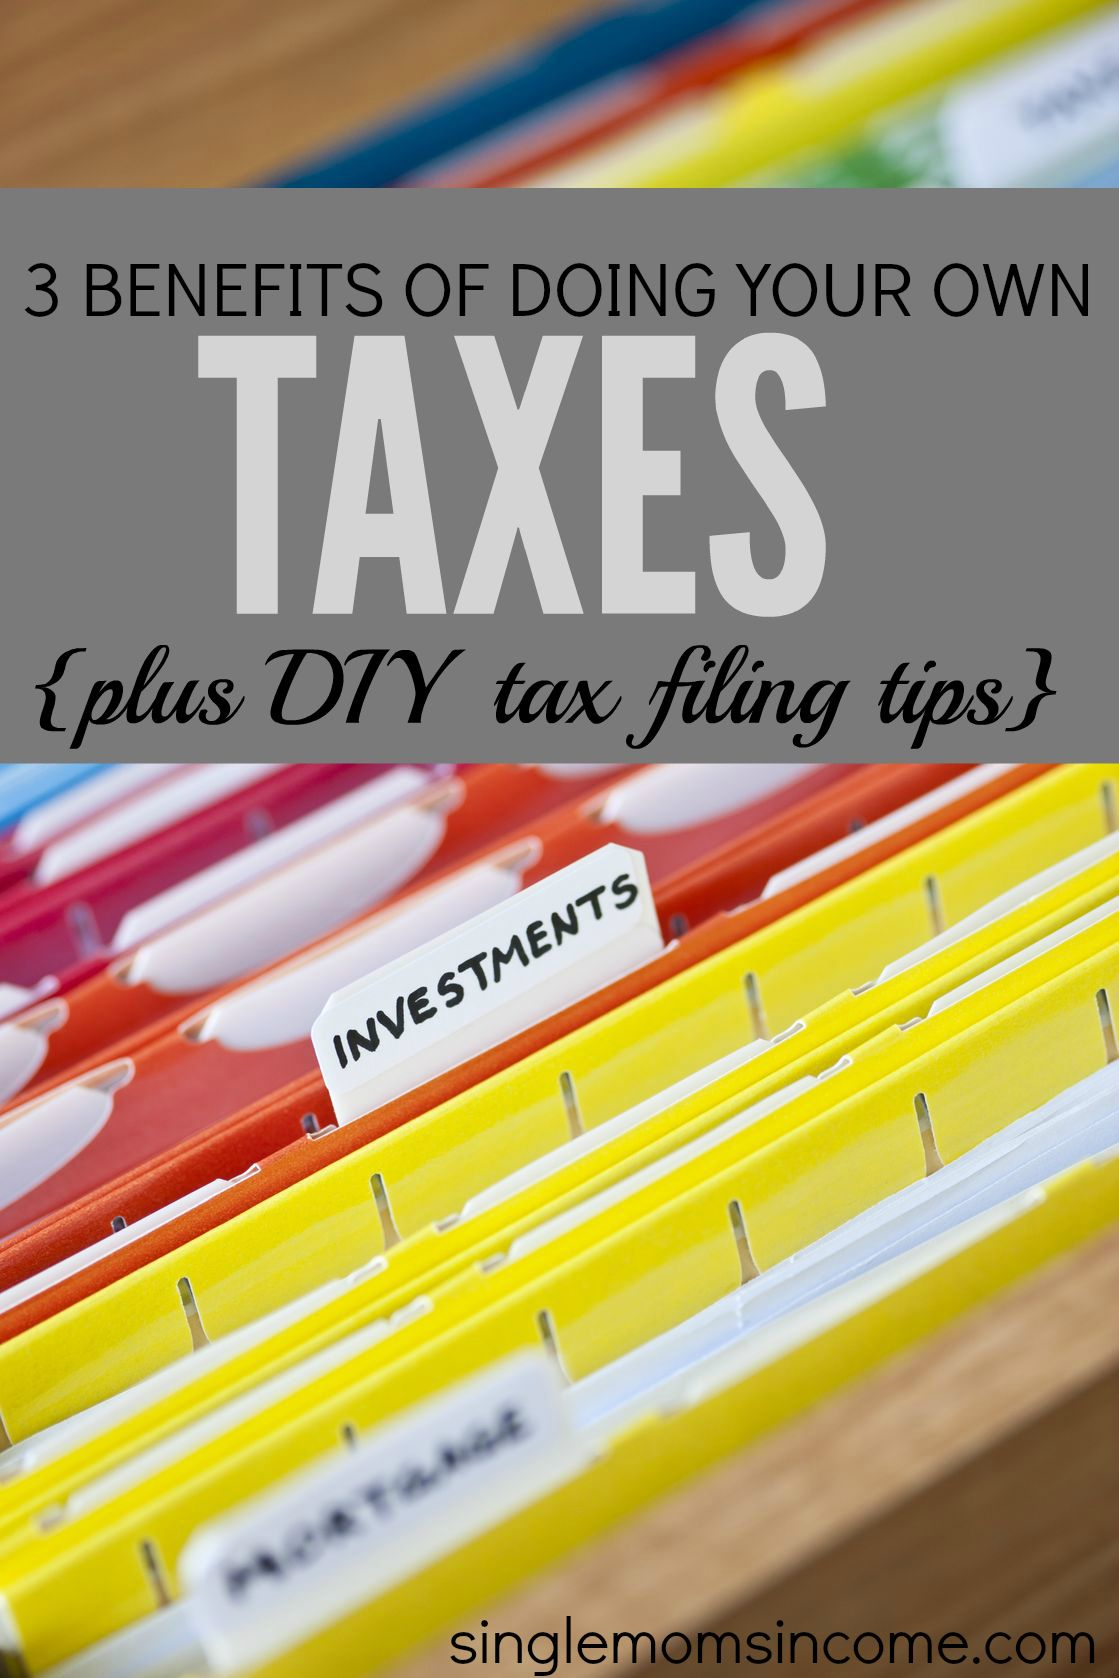 3 Reasons To Prepare Your Own Taxes Diy Tax Filing Tips Single Moms Income Diy Taxes Filing Taxes Business Tax